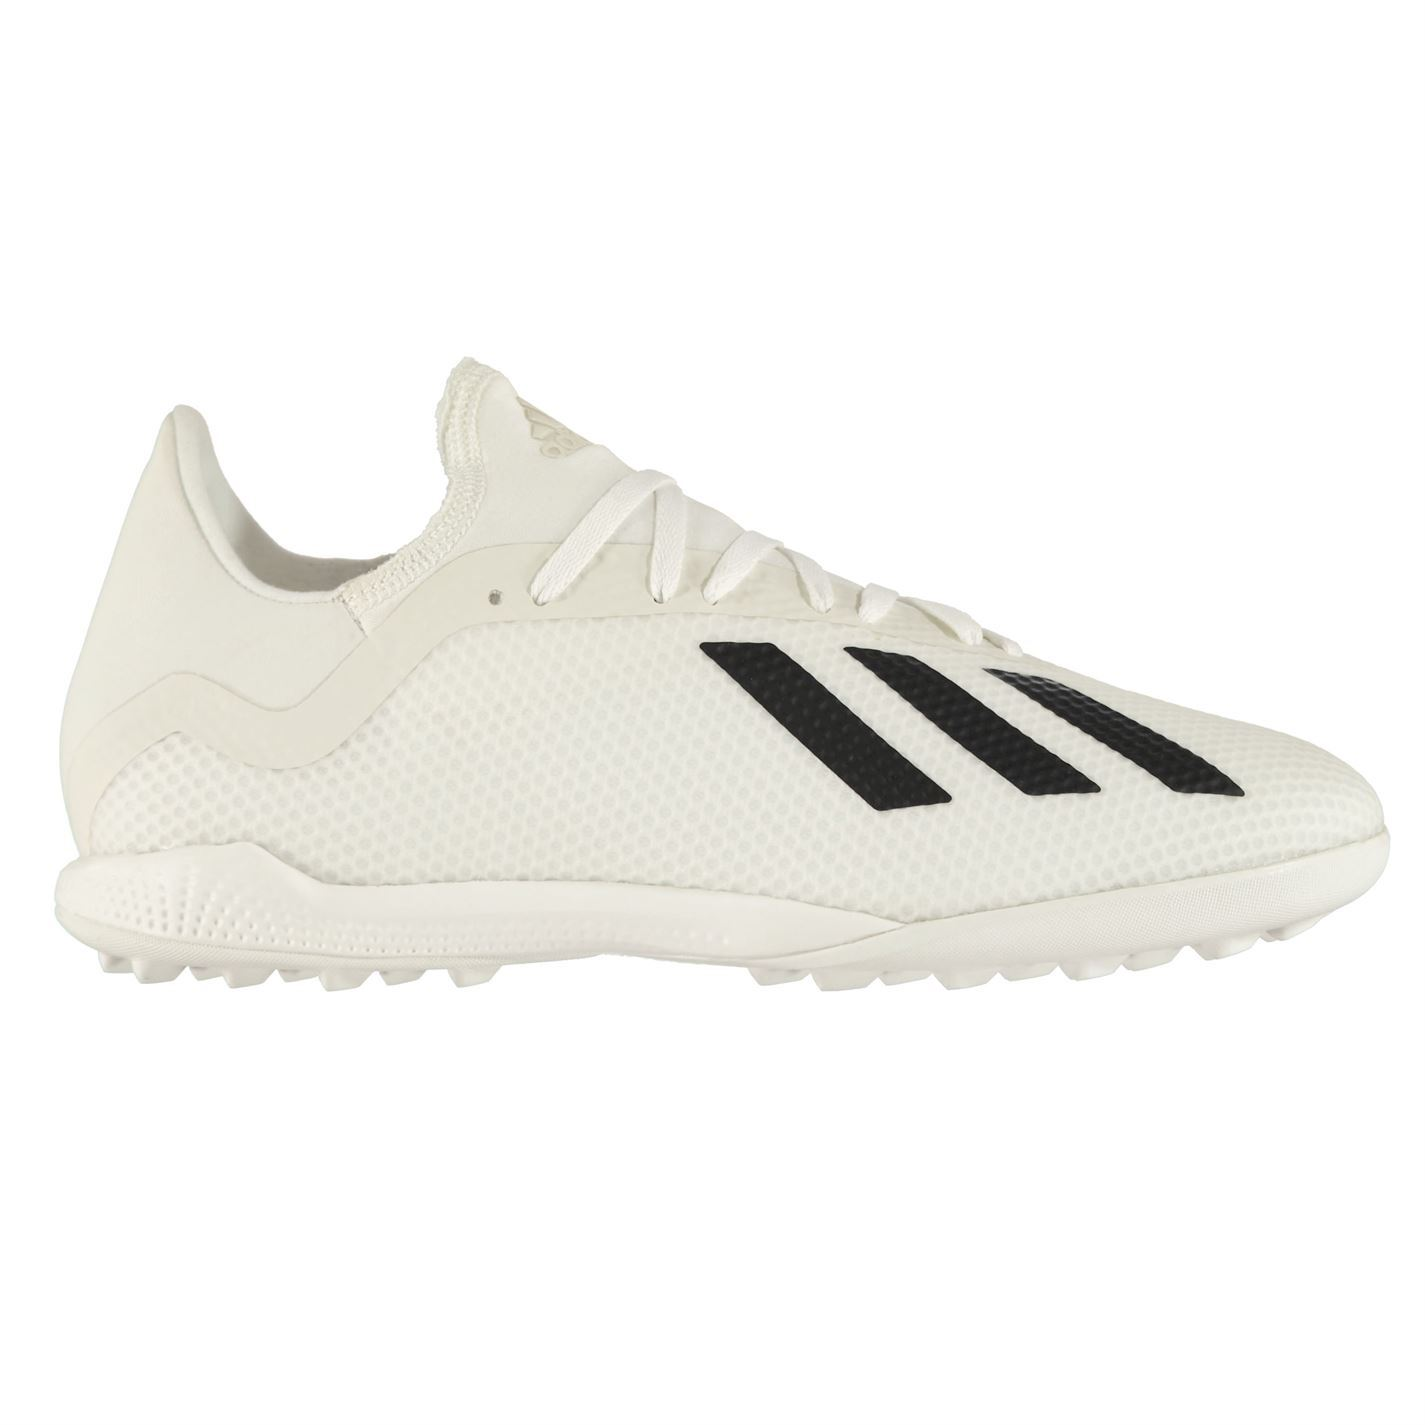 63cb5d803 ... adidas X Tango 18.3 Astro Turf Football Trainers Mens Soccer Shoes  Sneakers